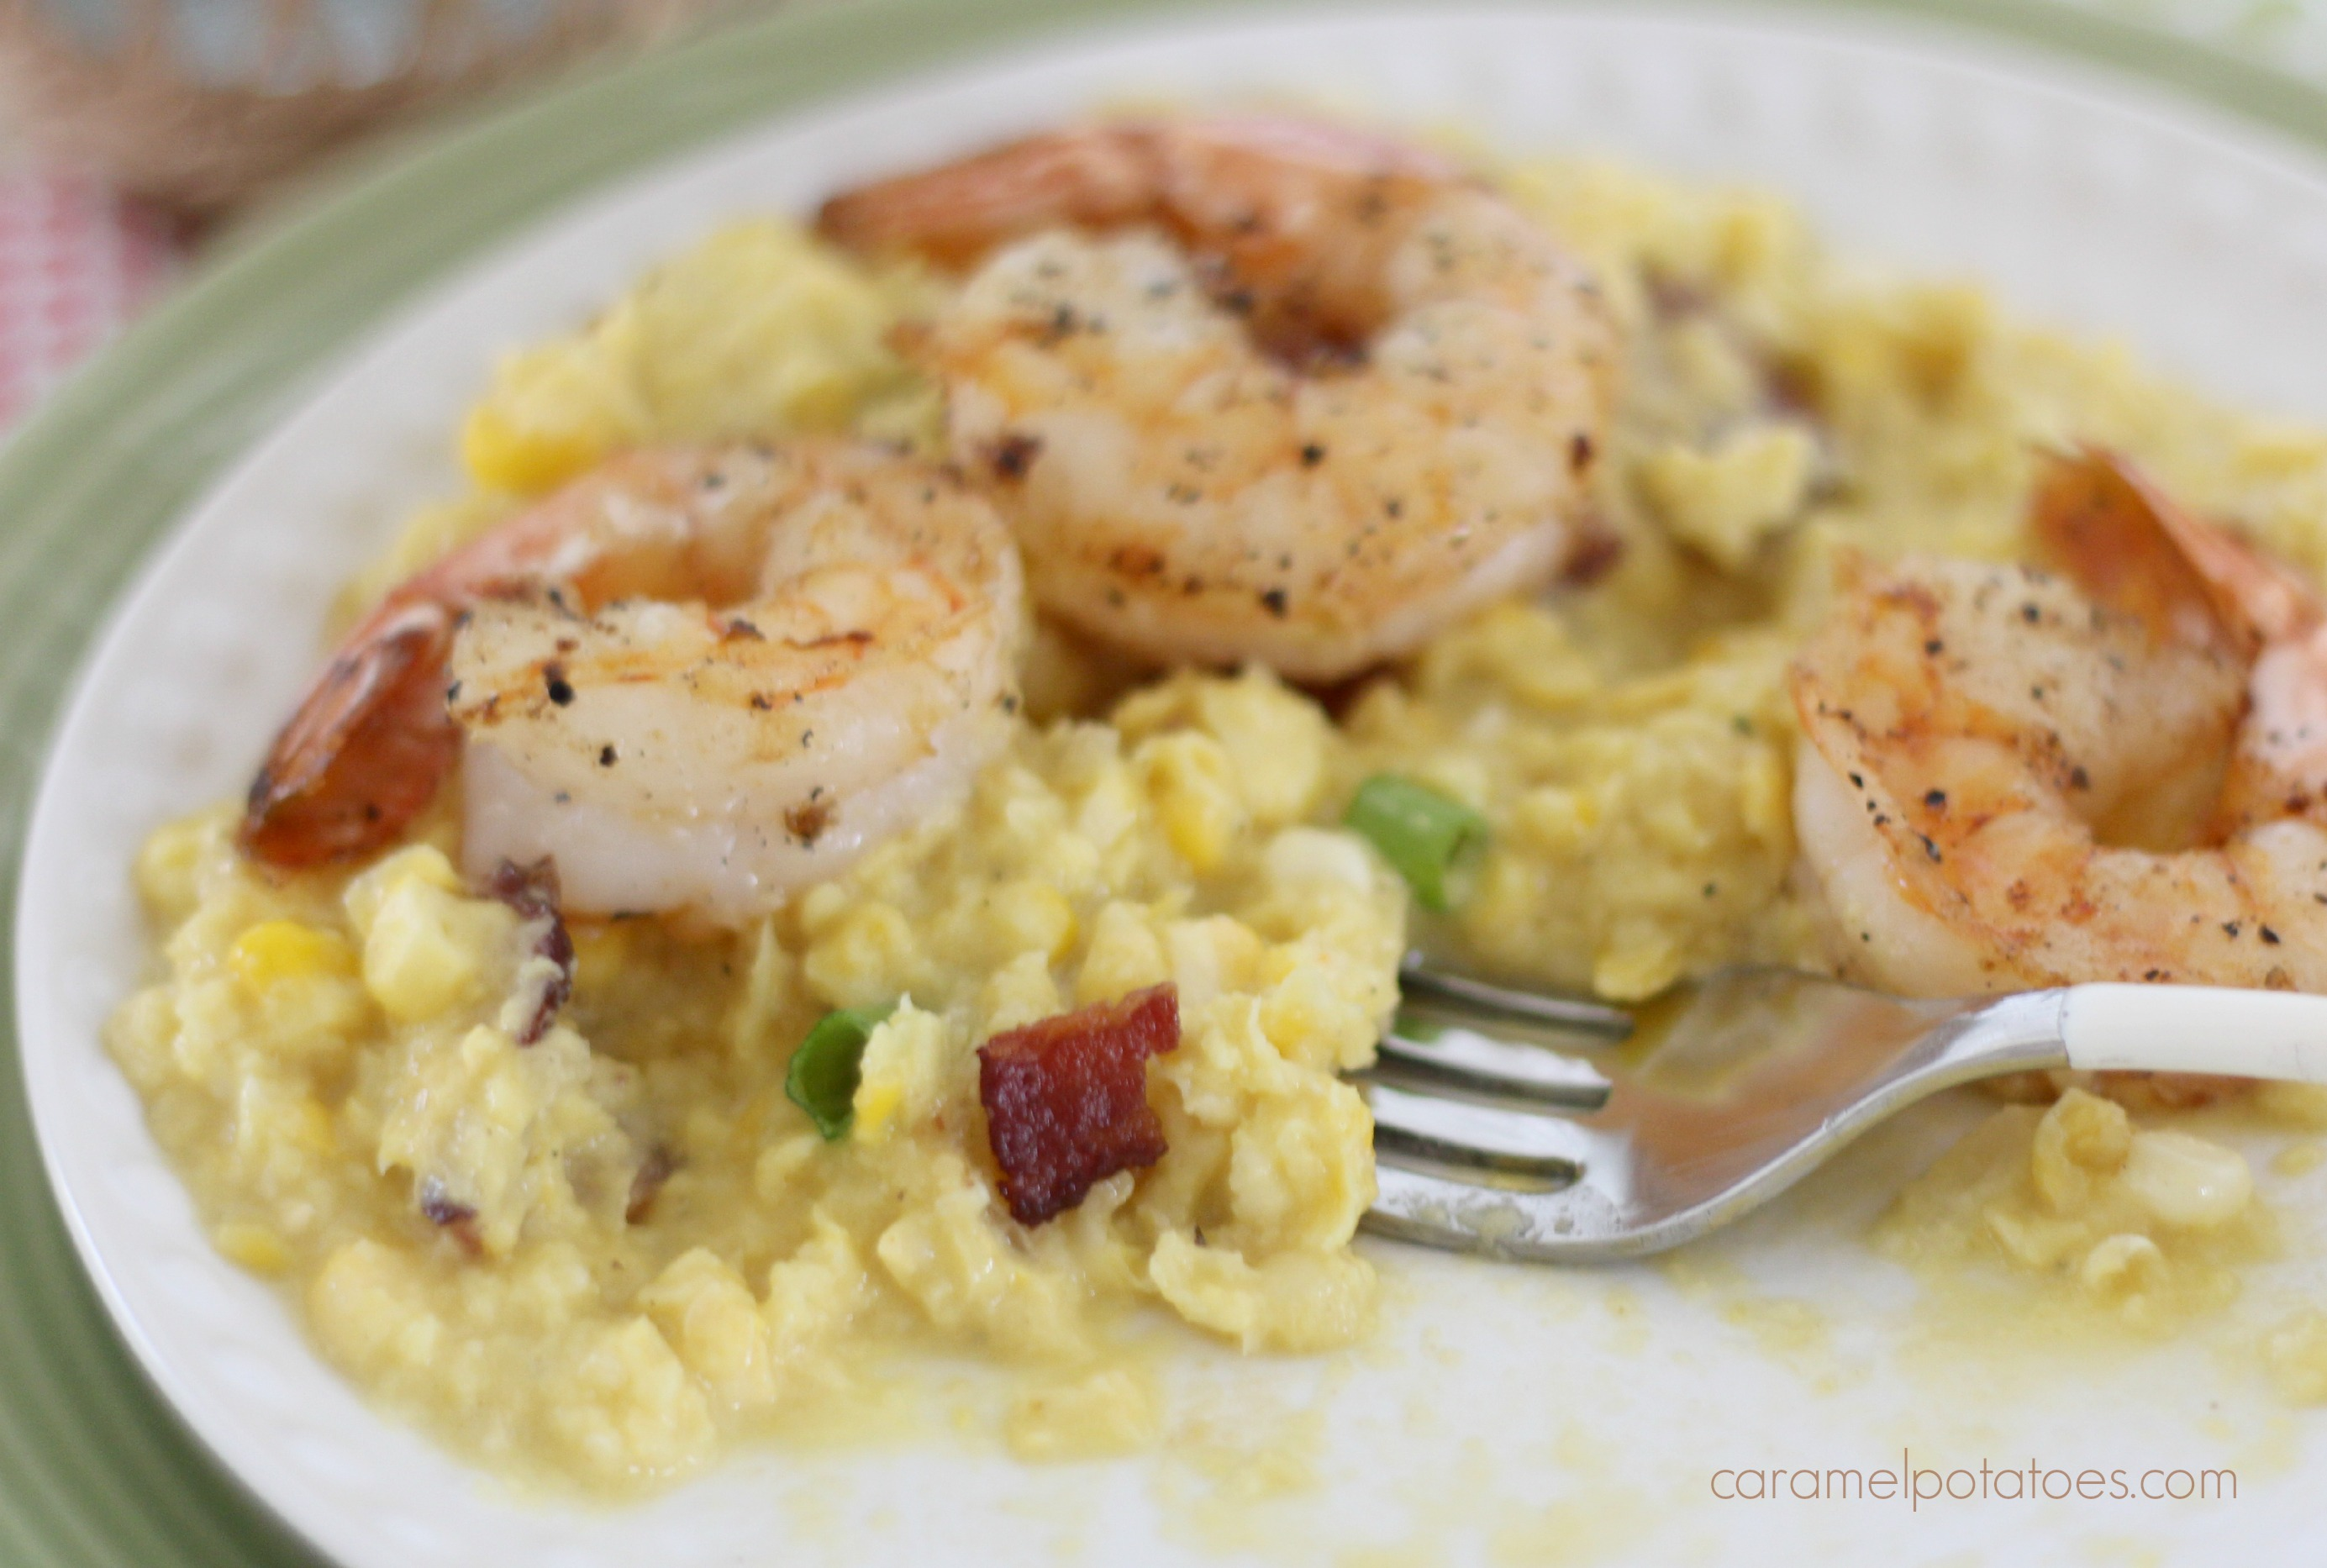 Caramel Potatoes » Fresh Corn Grits with Bacon and Shrimp